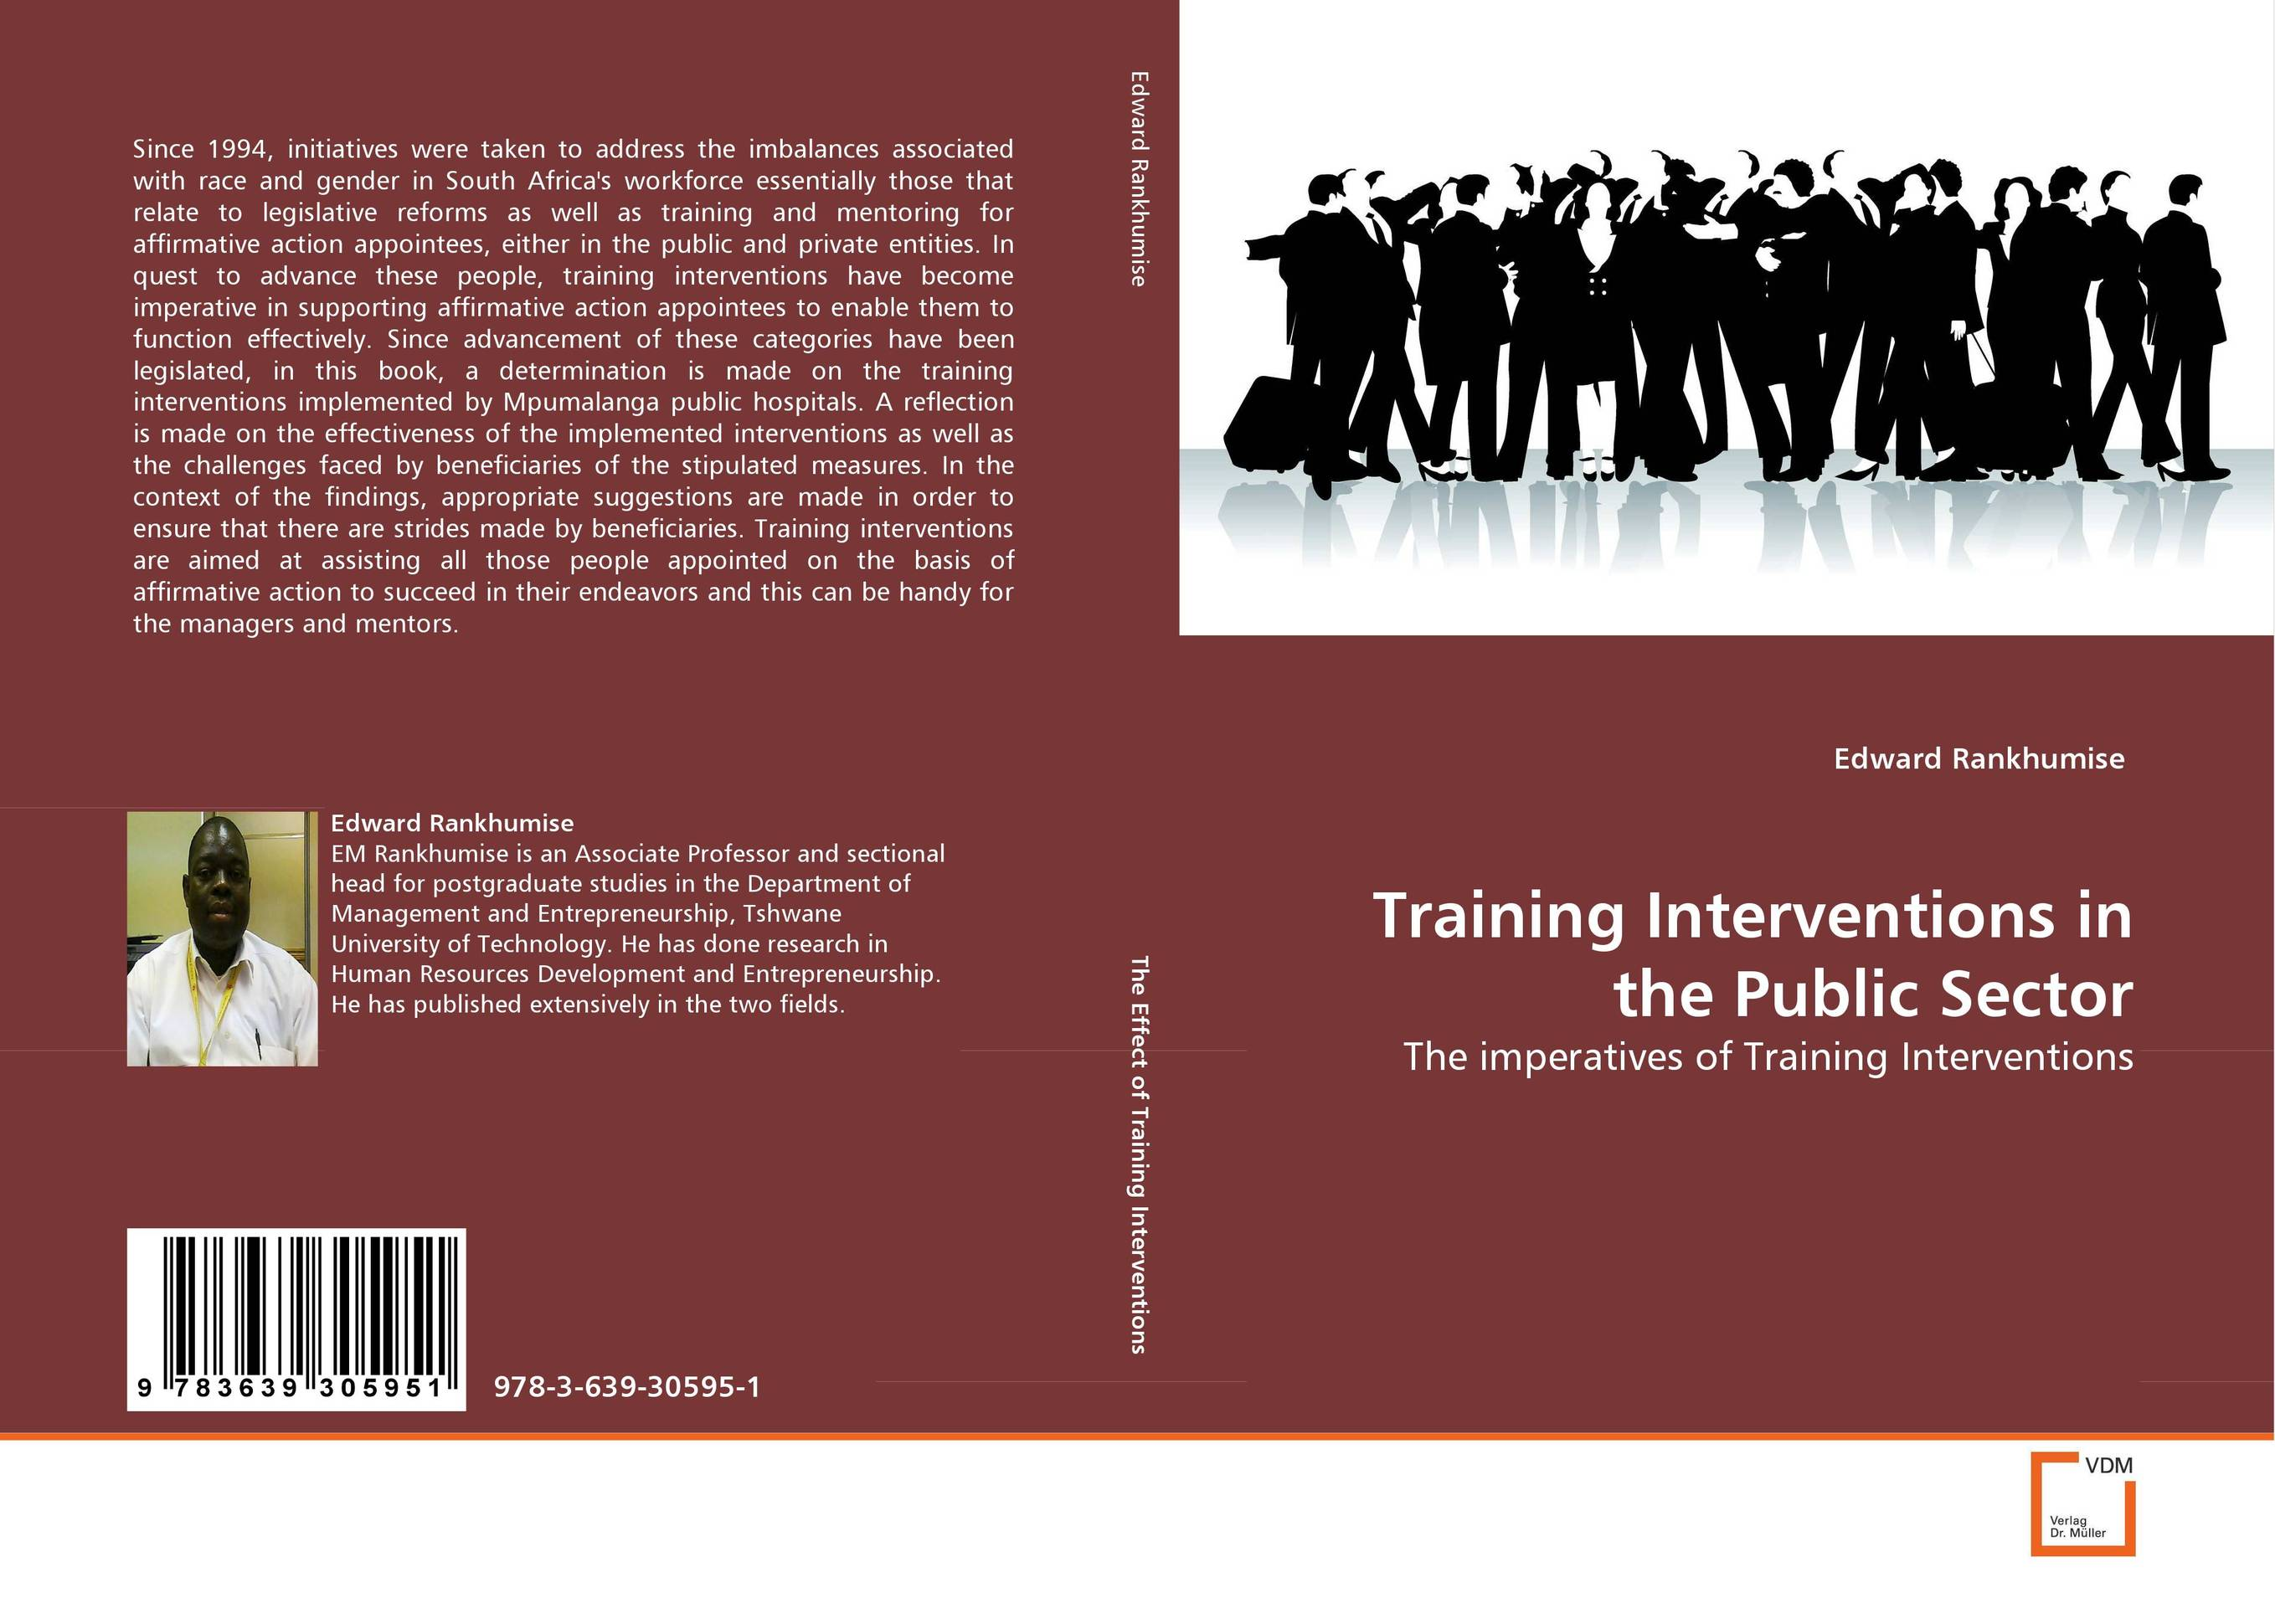 Training Interventions in the Public Sector